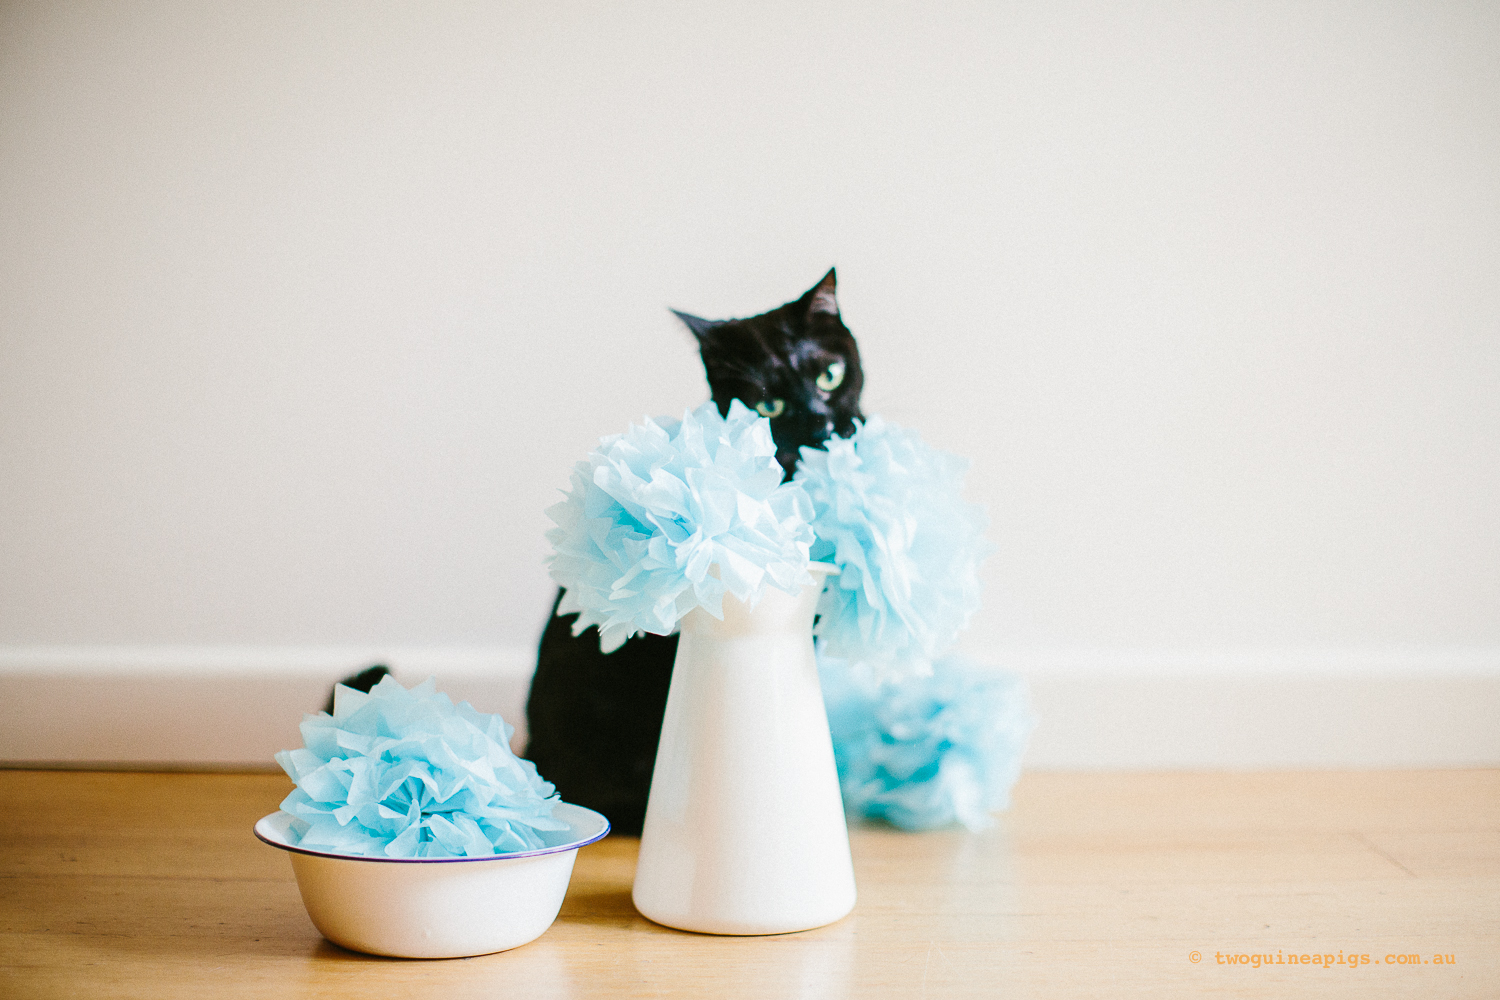 twoguineapigs_pet_photography_ruby_slipper_cat_floral_series_TEST_1500-33.jpg